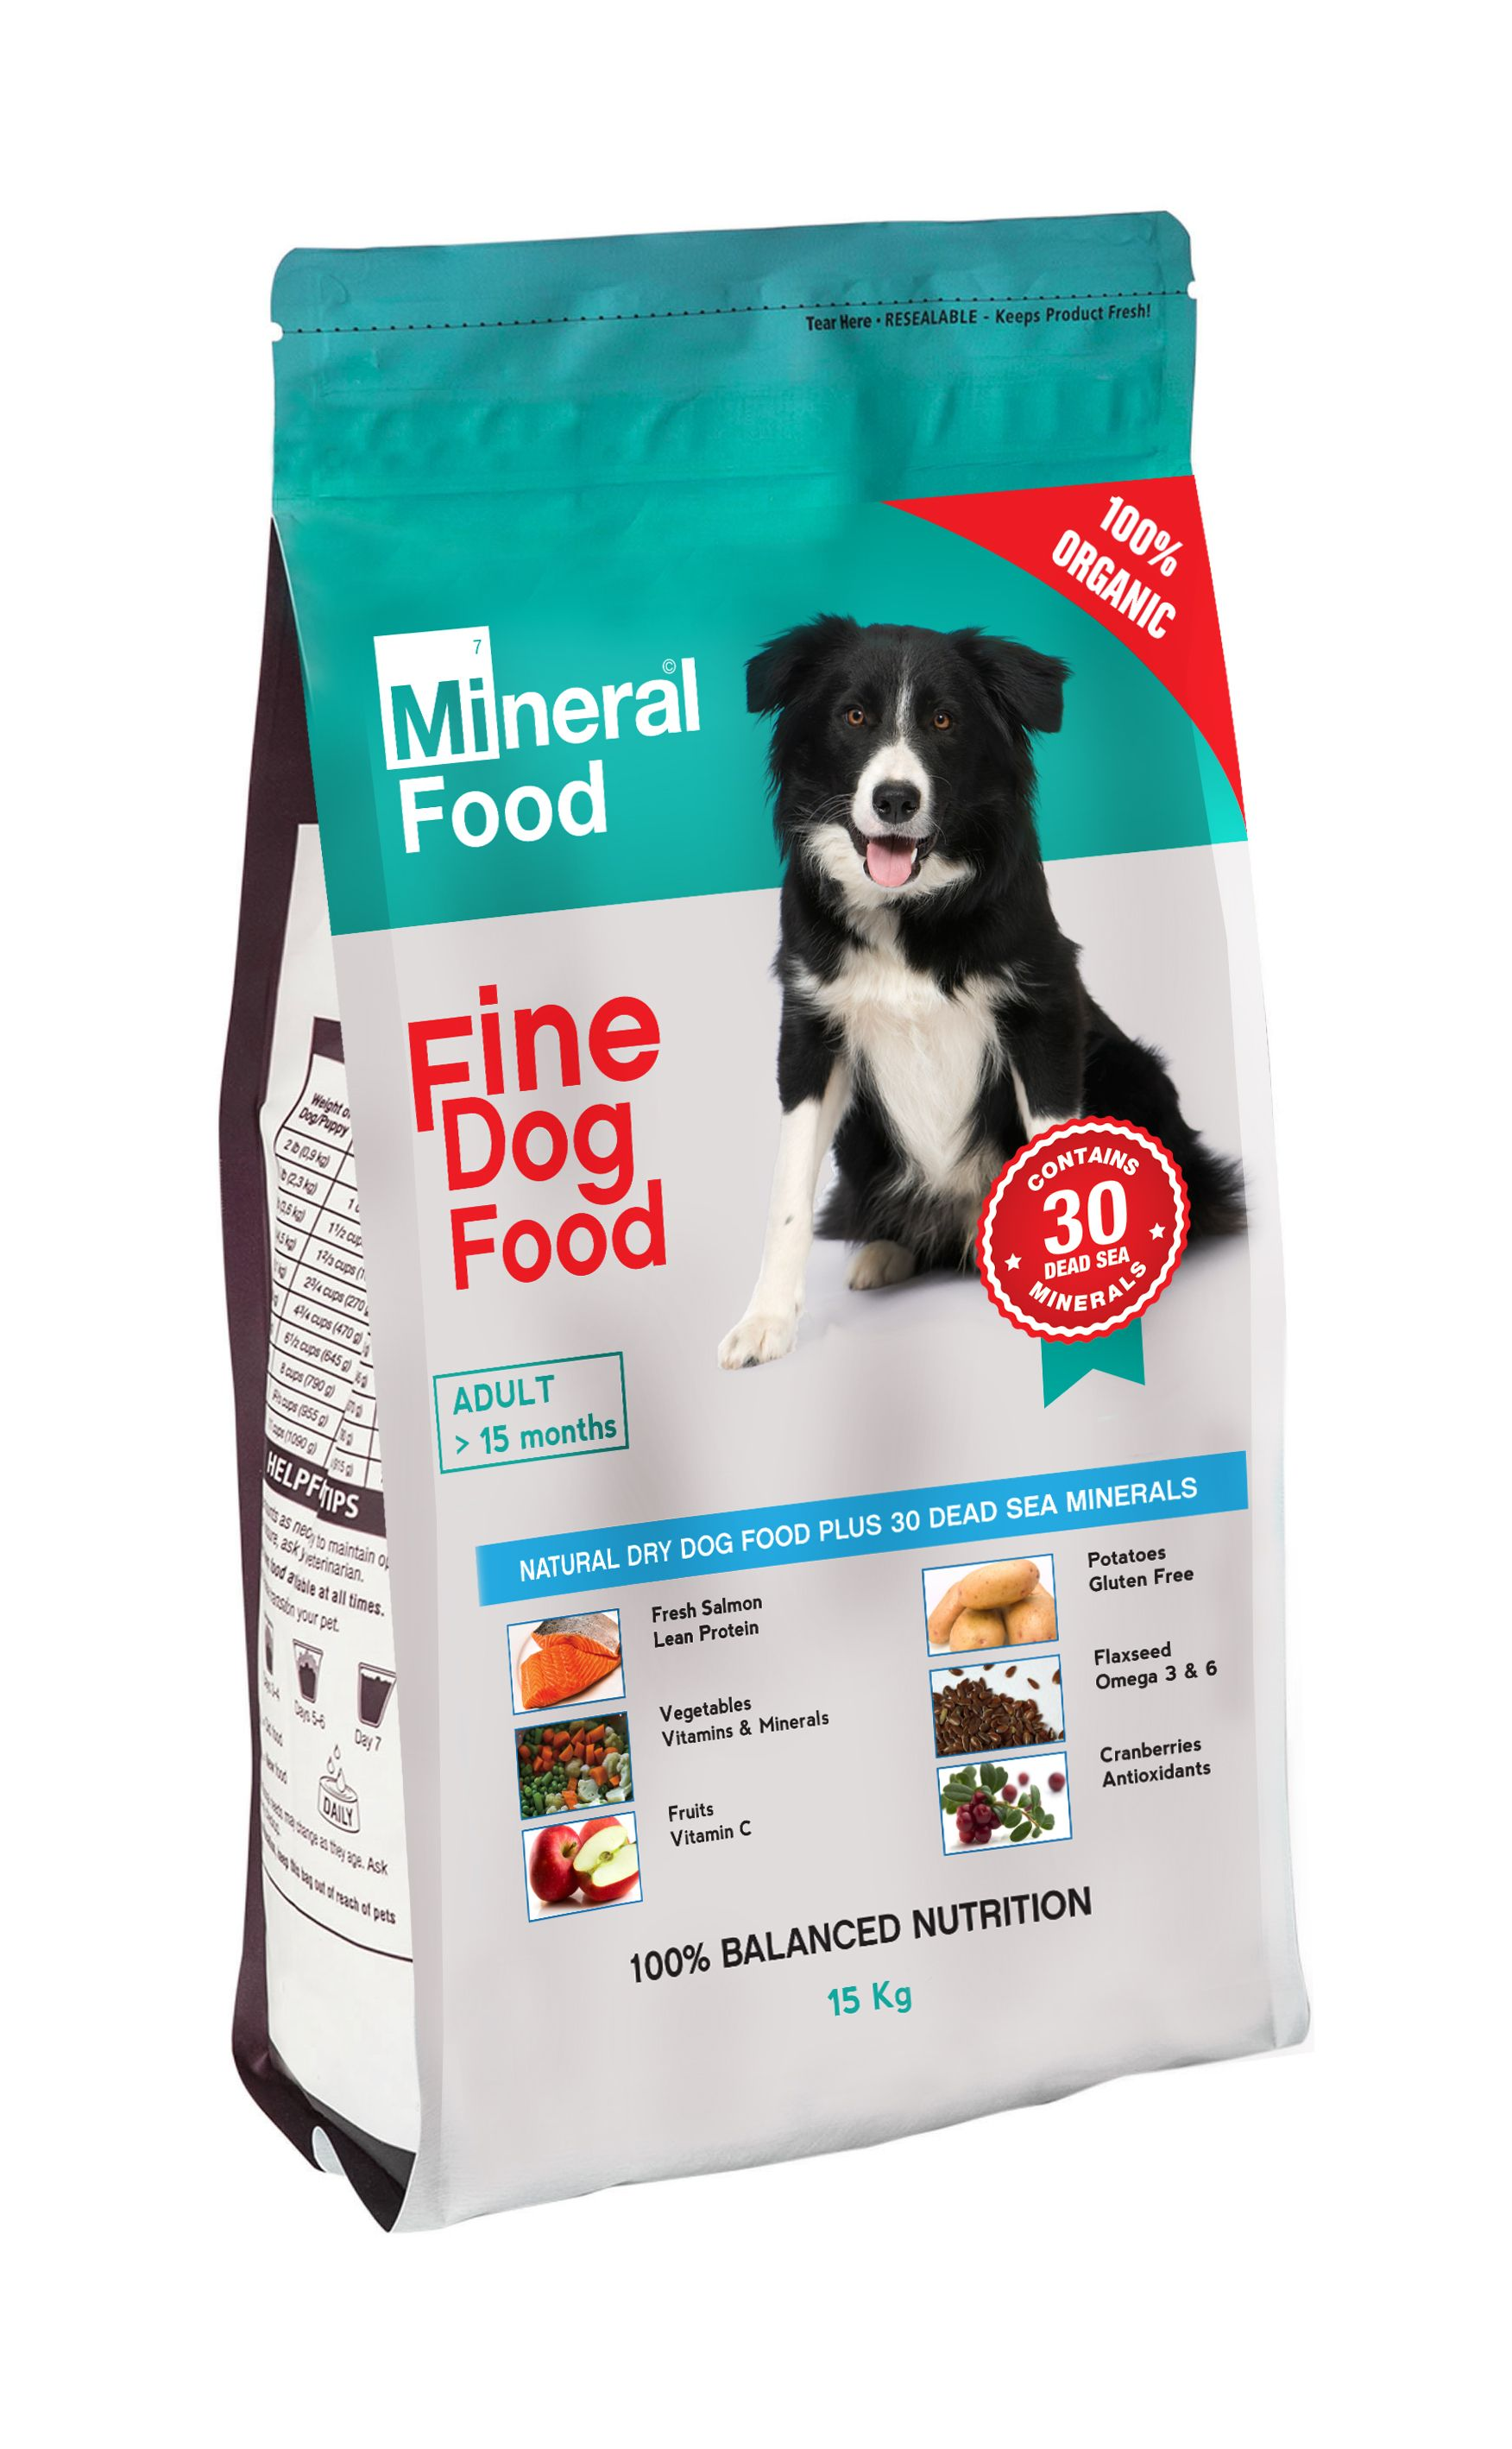 Pet Food Packaging Design Pet Food Packaging Food Animals Food